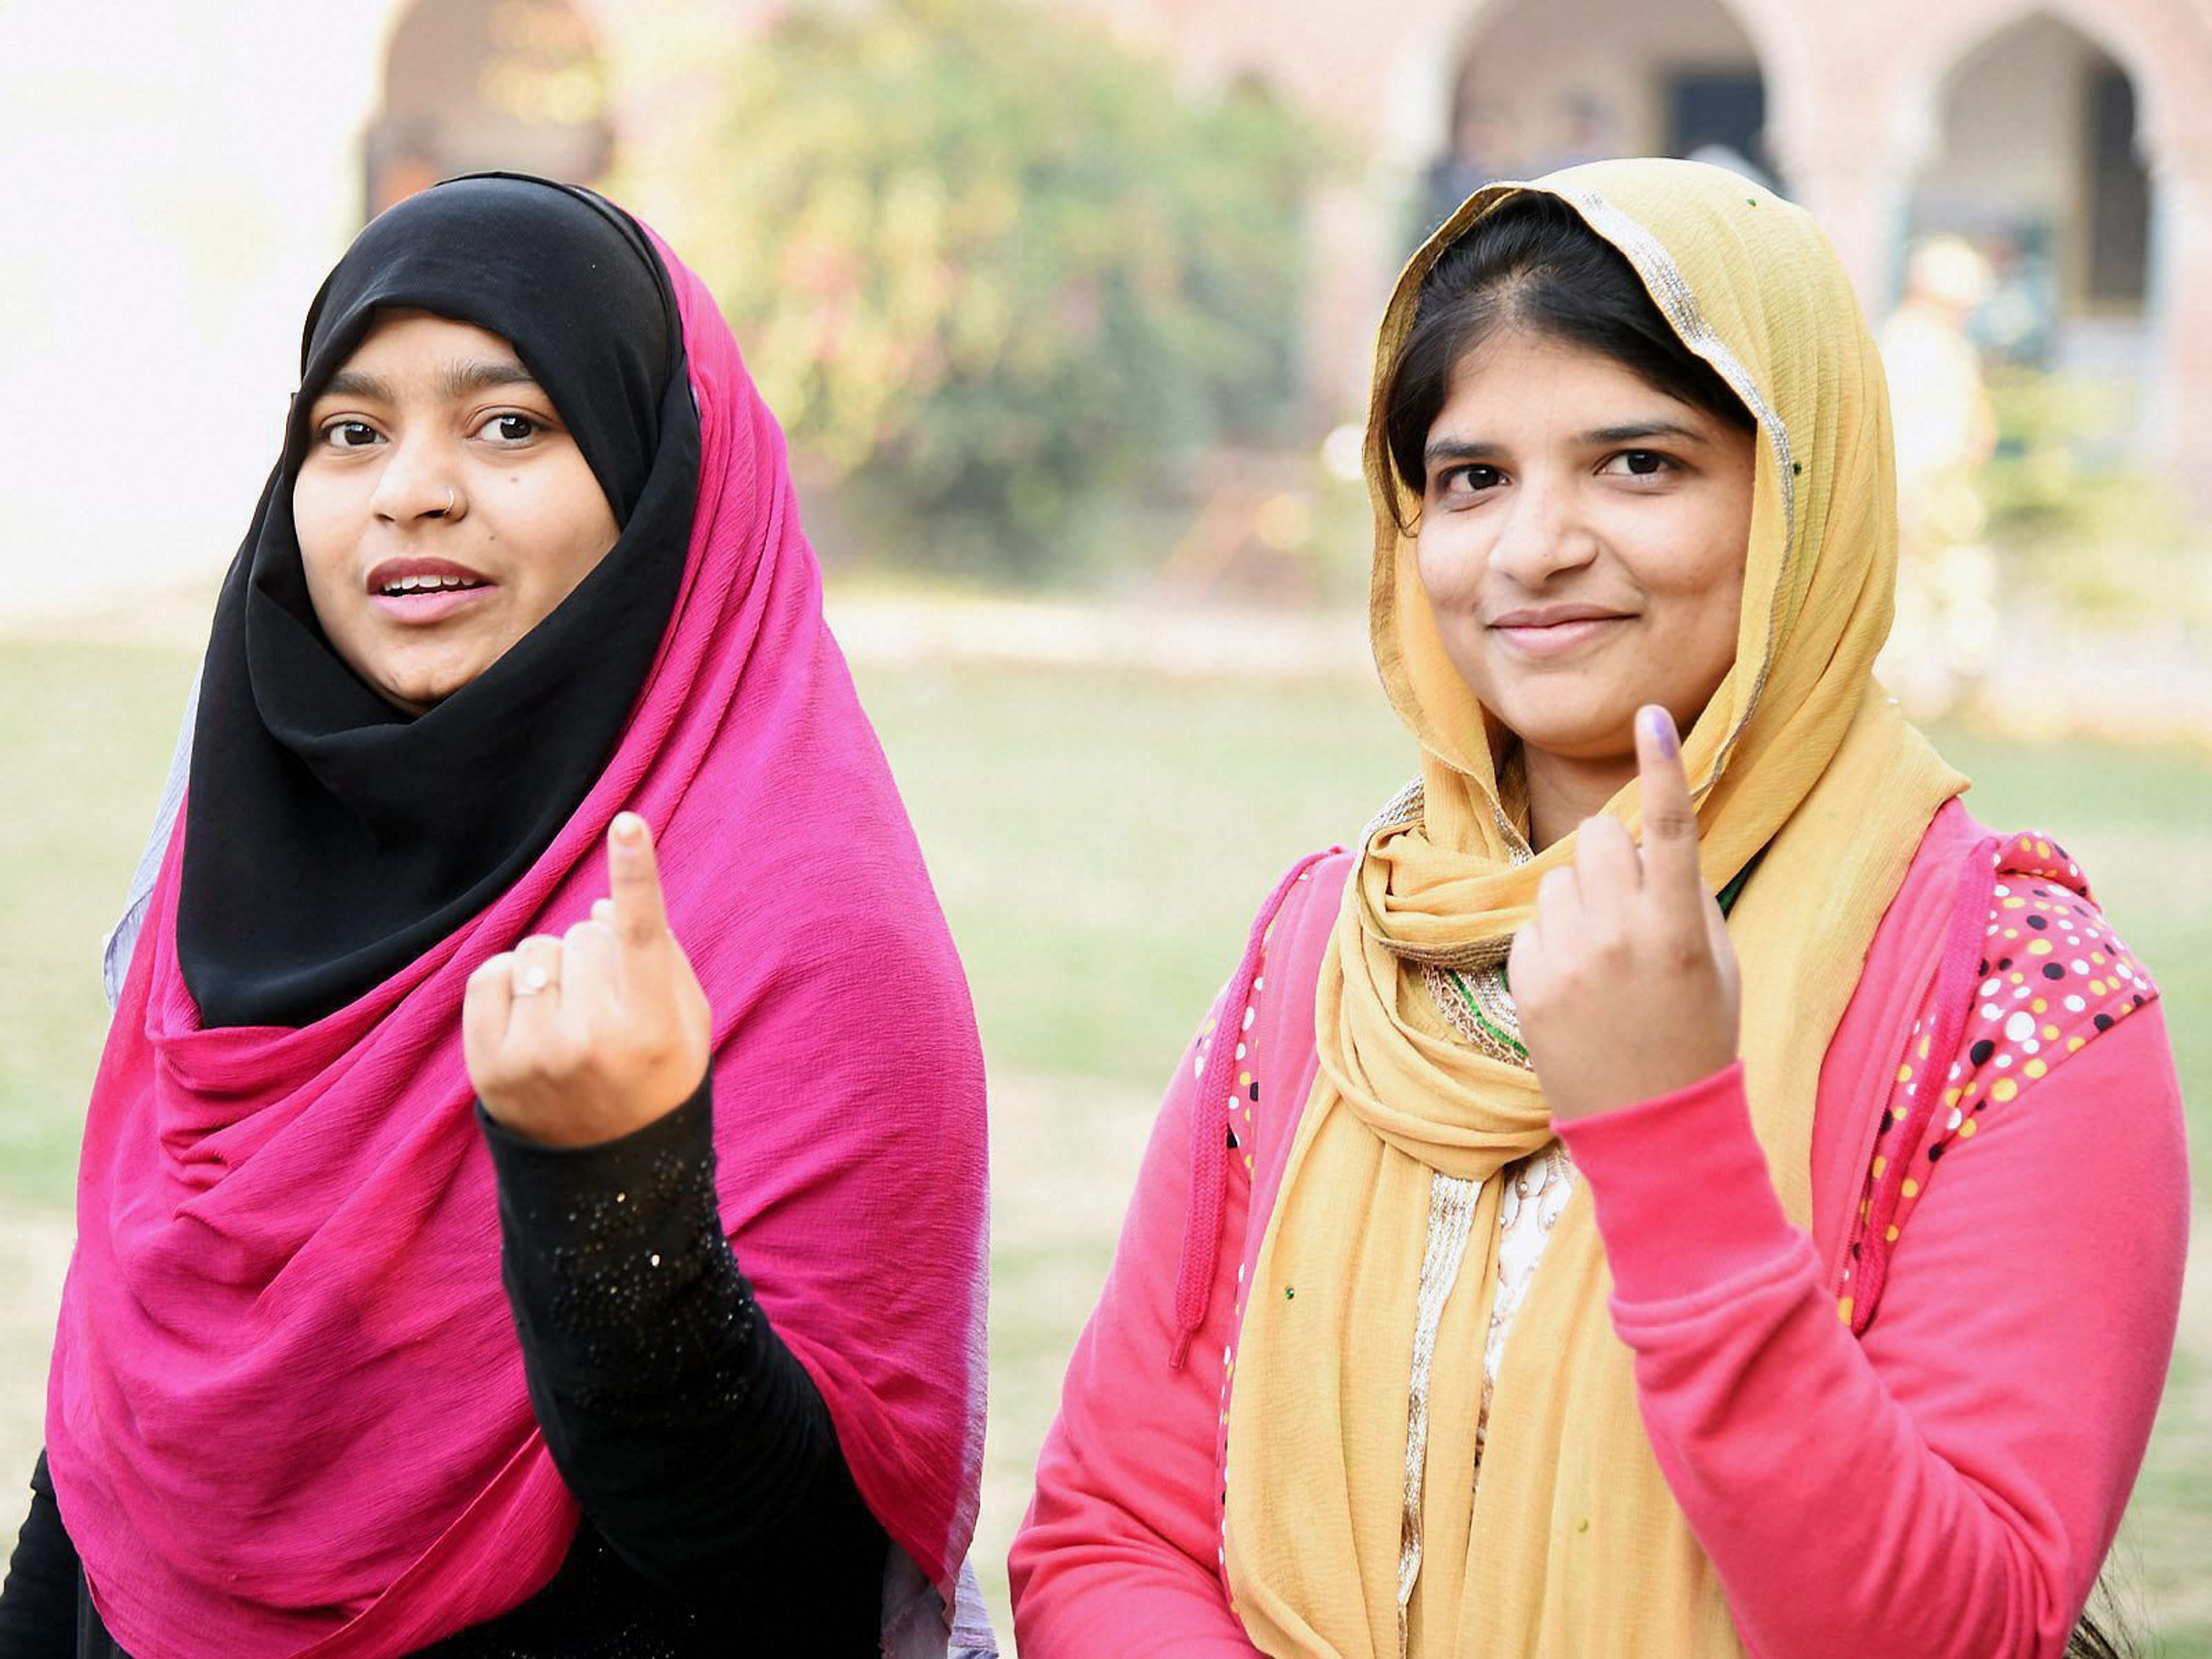 legal single muslim girls The legal status of women in the modern middle east has been in law and women in the middle east even in medieval times muslim women enjoyed rights.